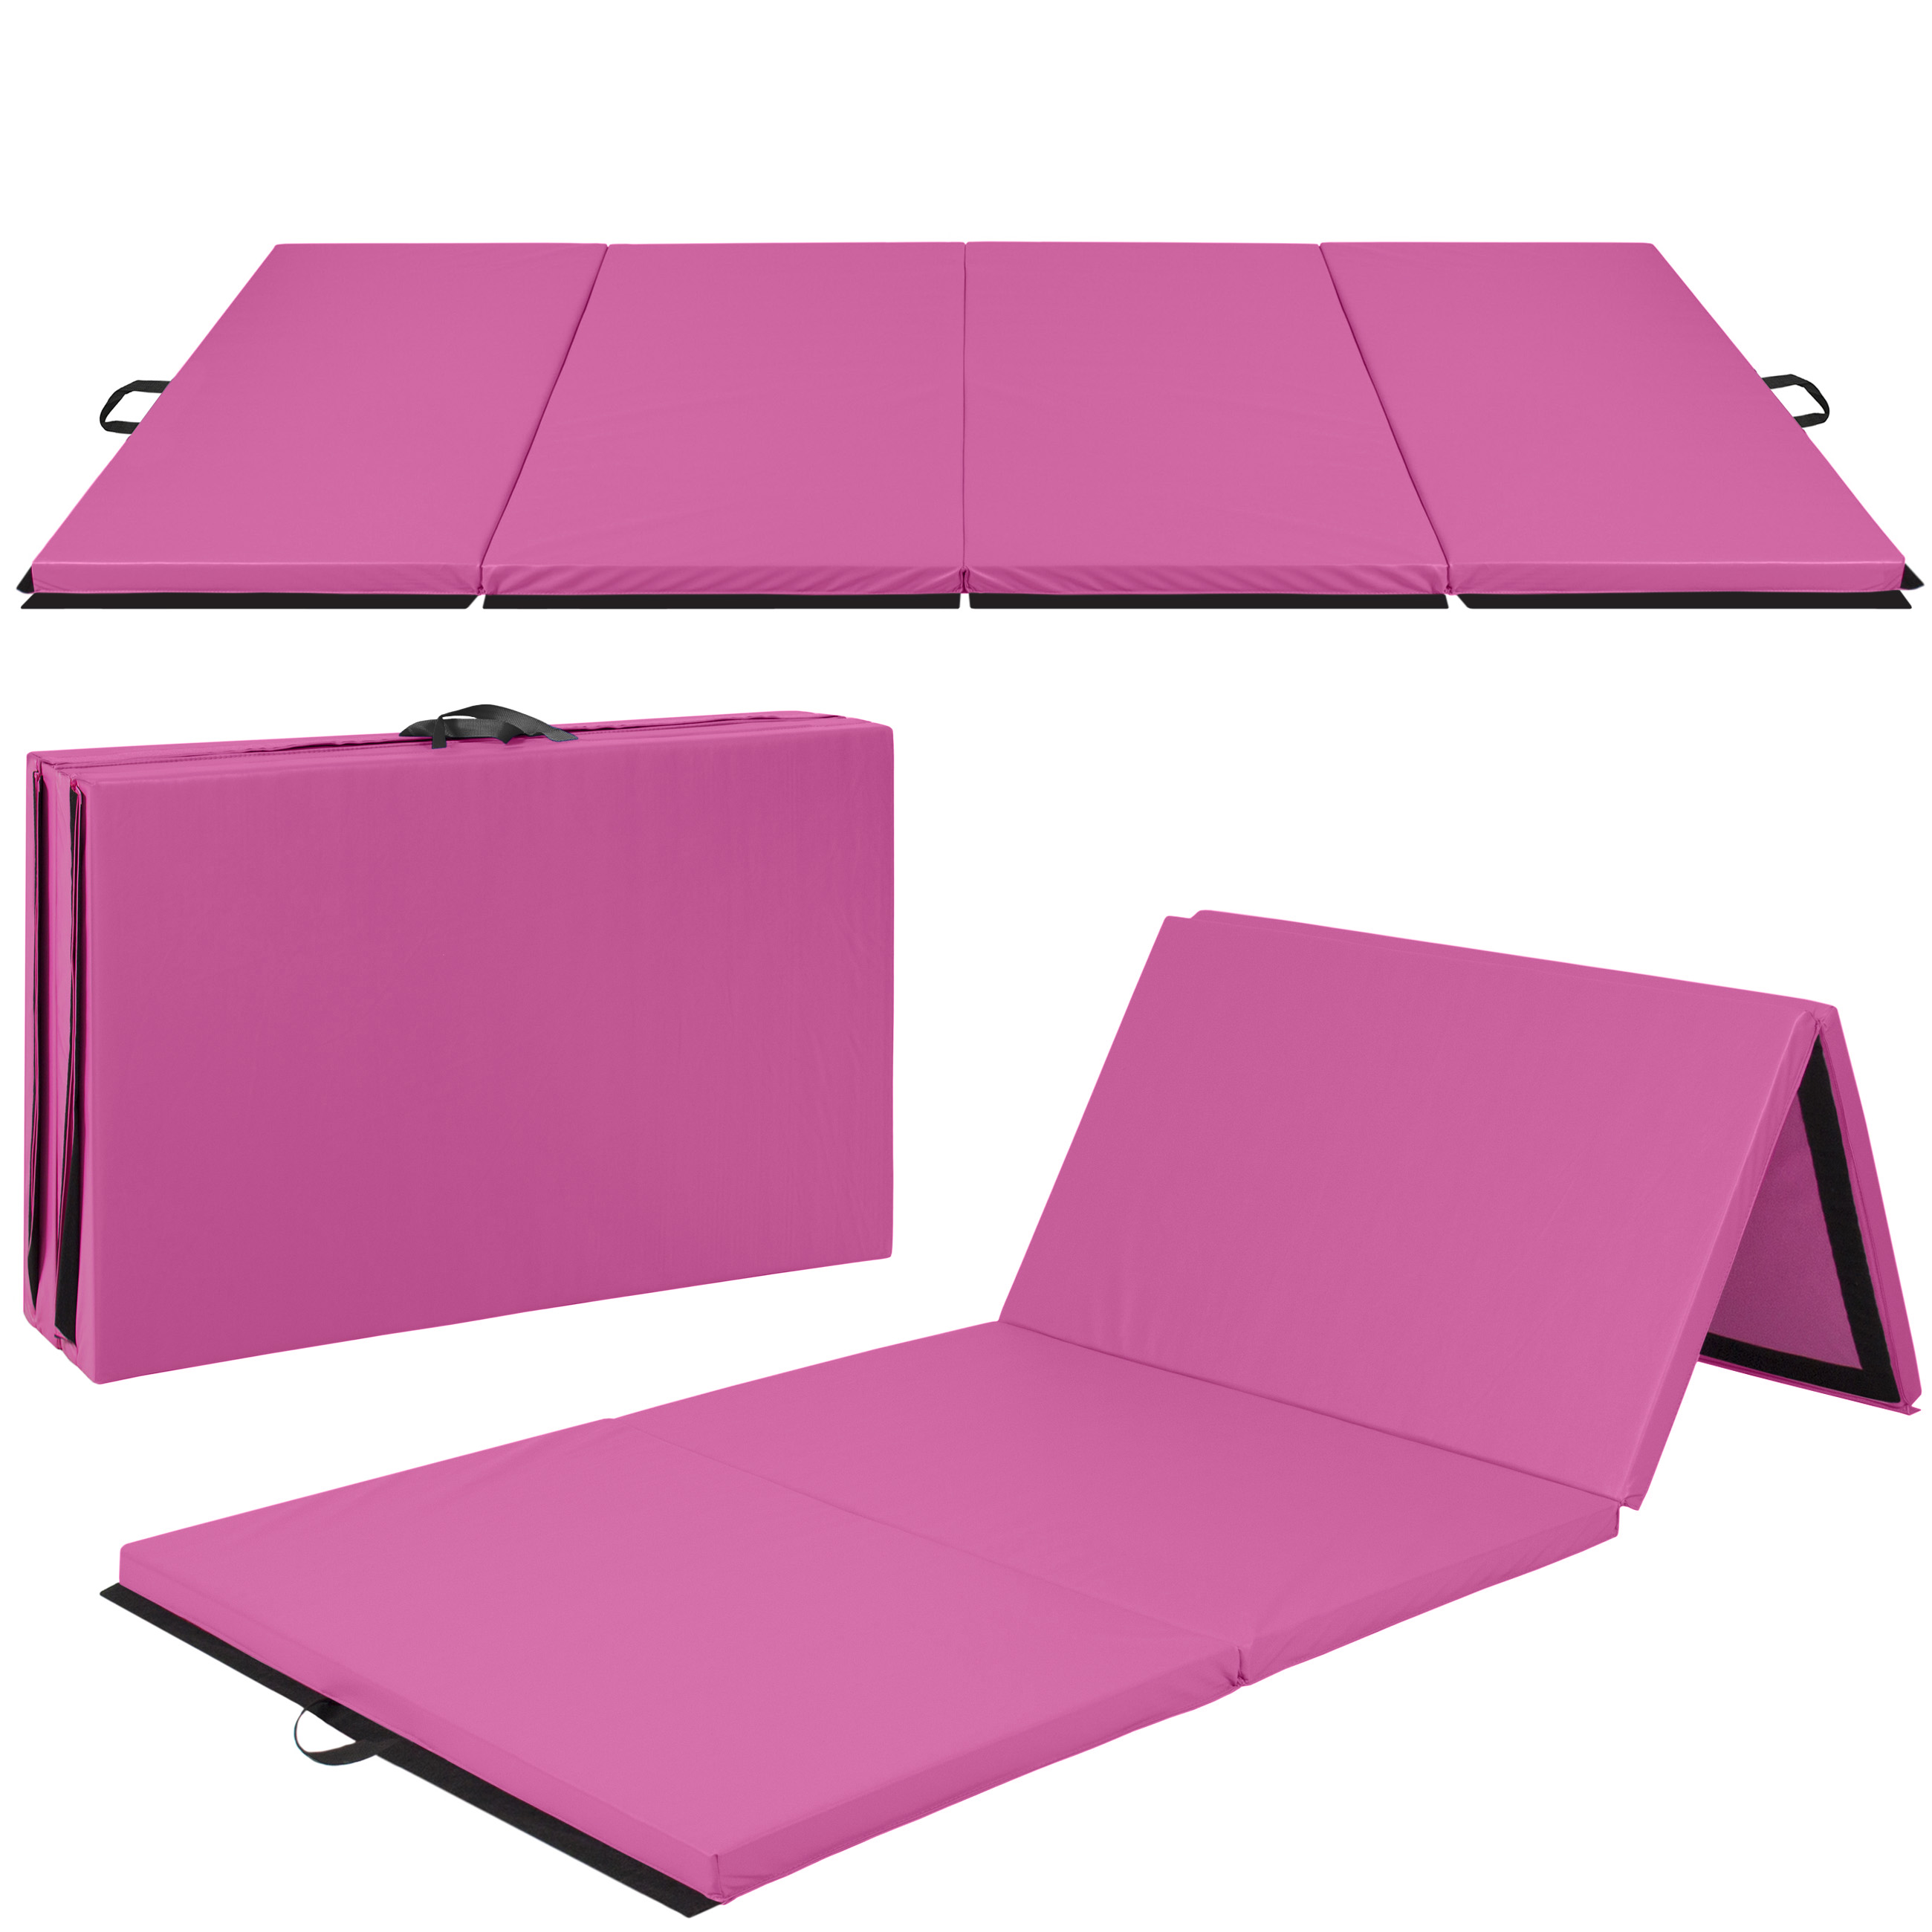 Best Choice Products 8ft 4-Panel Extra-Thick Foam Folding Exercise Gym Floor Mat for Gymnastics, Aerobics, Yoga, Martial Arts w/ Carrying Handles - Pink